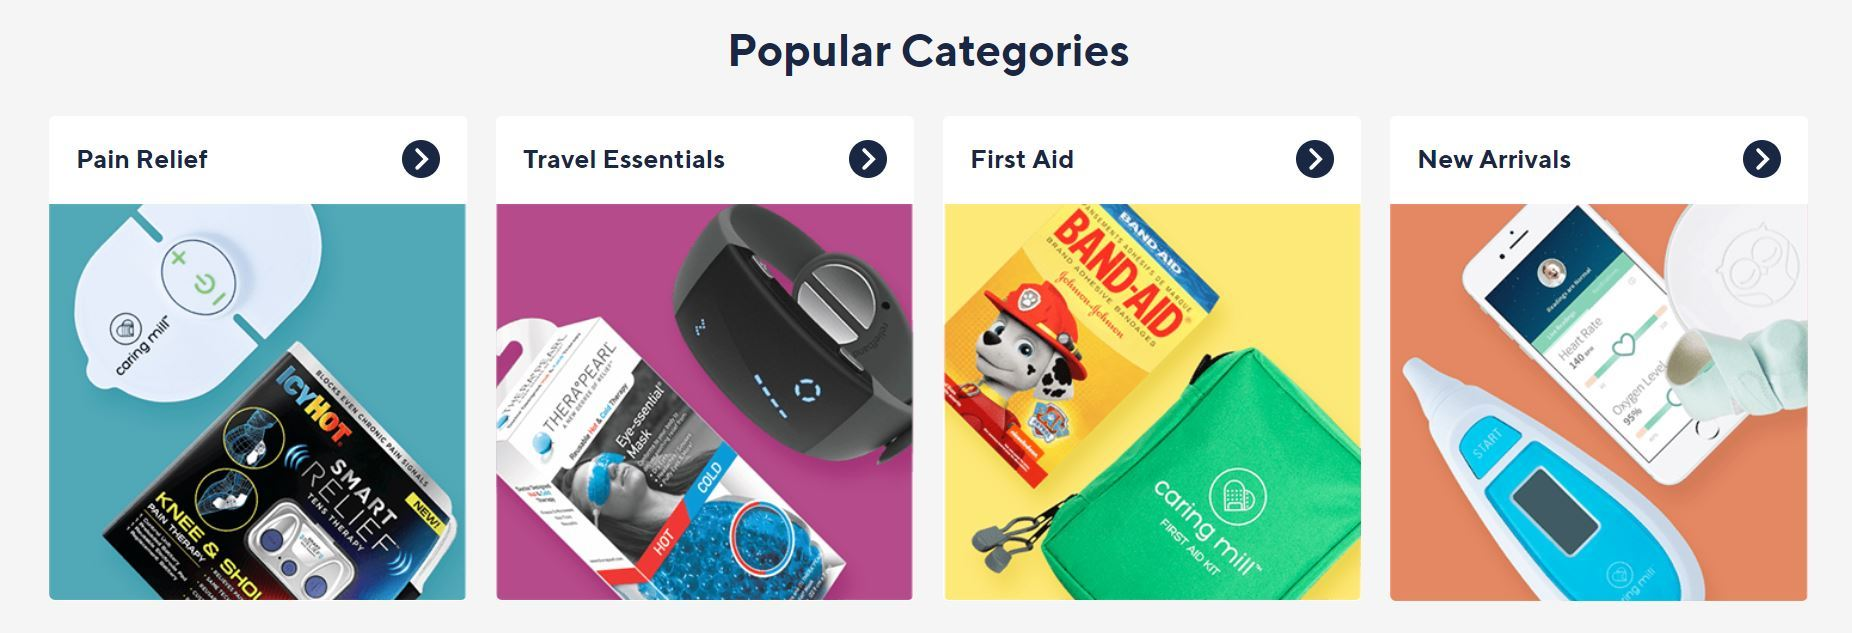 FSA Store popular categories